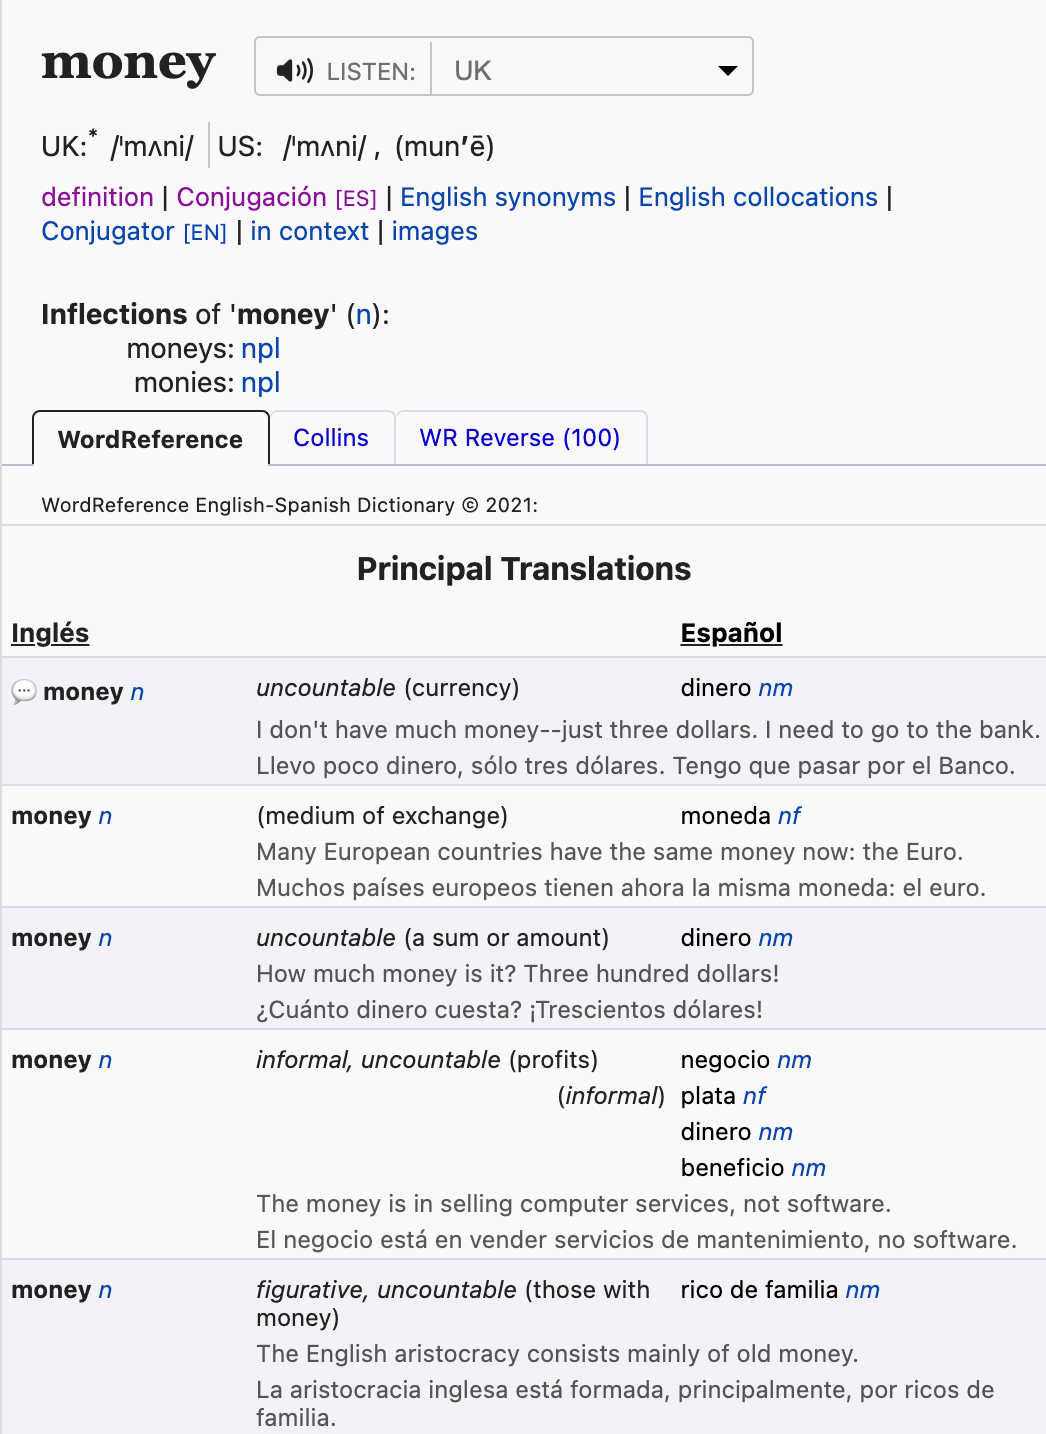 """Screenshot of the WordReference.com entry for """"money"""". It includes five different """"Principle Translations"""" corresponding to different Spanish words."""